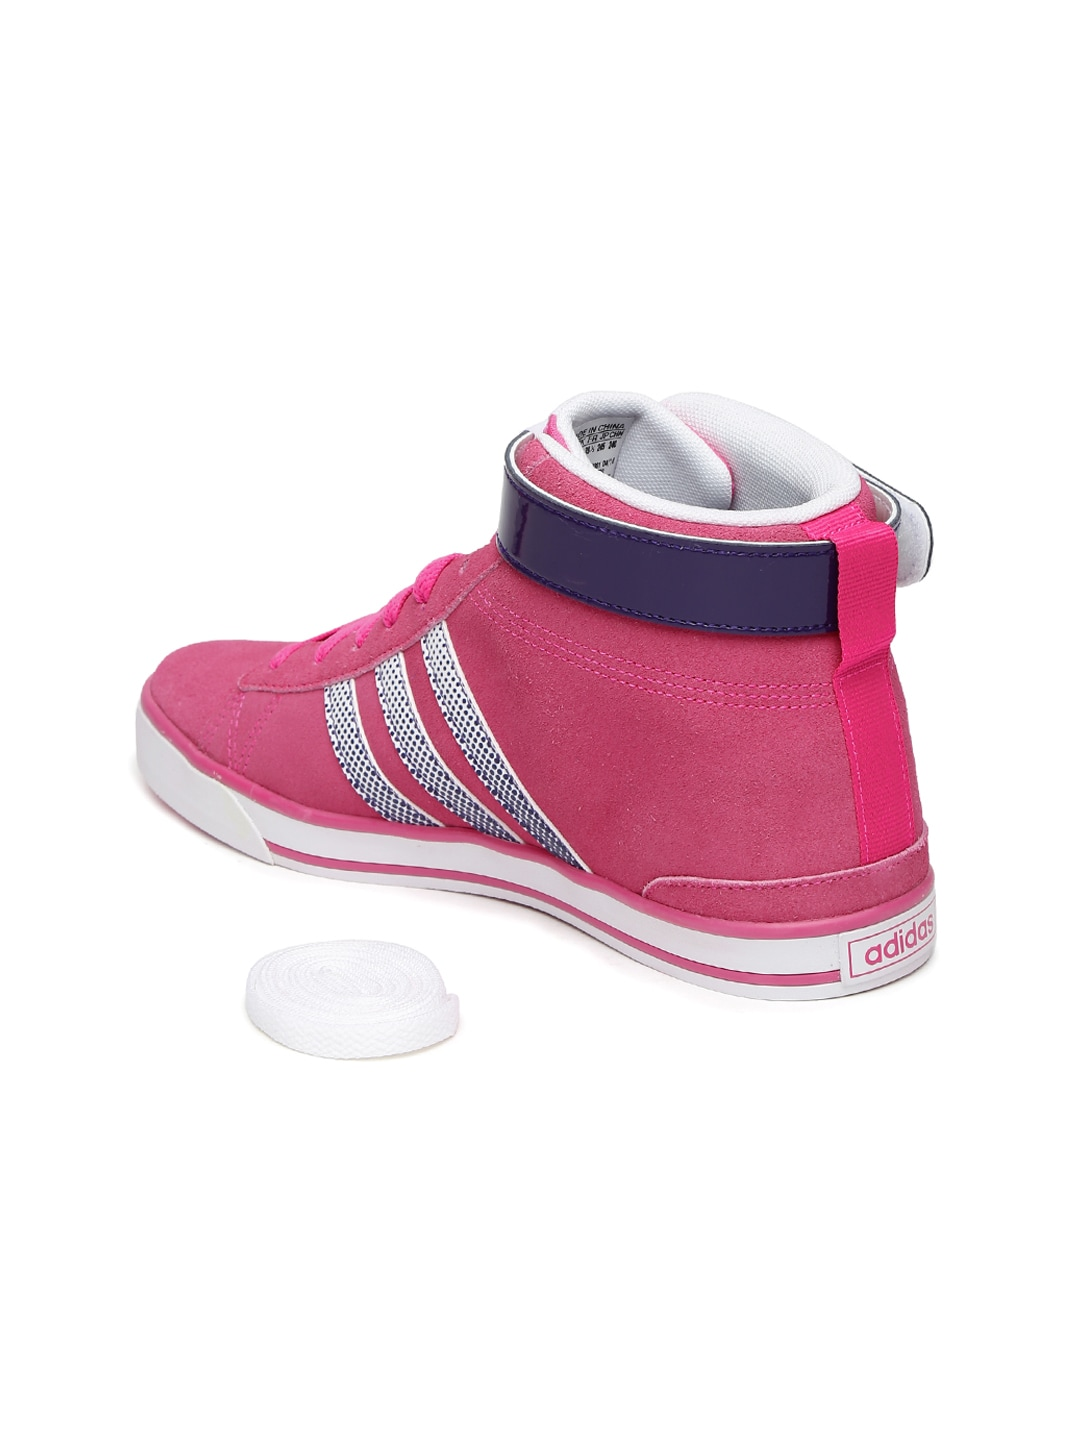 5f52893eb ... Women Adidas Neo Shoes - Buy Women Adidas Neo Shoes online in India ...